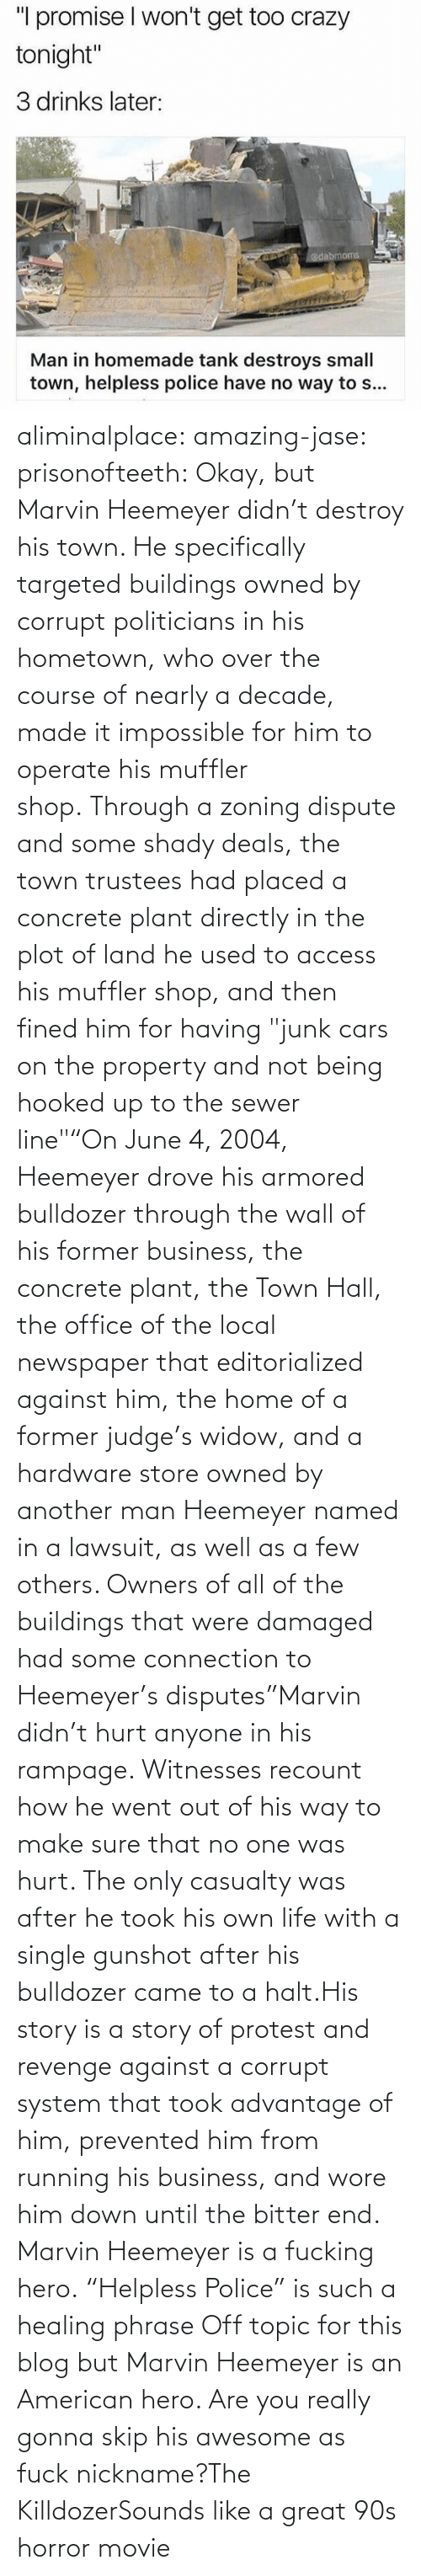 "hero: aliminalplace: amazing-jase:  prisonofteeth: Okay, but Marvin Heemeyer didn't destroy his town. He specifically targeted buildings owned by corrupt politicians in his hometown, who over the course of nearly a decade, made it impossible for him to operate his muffler shop. Through a zoning dispute and some shady deals, the town trustees had placed a concrete plant directly in the plot of land he used to access his muffler shop, and then fined him for having ""junk cars on the property and not being hooked up to the sewer line""""On June 4, 2004, Heemeyer drove his armored bulldozer through the wall of his former business, the concrete plant, the Town Hall, the office of the local newspaper that editorialized against him, the home of a former judge's widow, and a hardware store owned by another man Heemeyer named in a lawsuit, as well as a few others. Owners of all of the buildings that were damaged had some connection to Heemeyer's disputes""Marvin didn't hurt anyone in his rampage. Witnesses recount how he went out of his way to make sure that no one was hurt. The only casualty was after he took his own life with a single gunshot after his bulldozer came to a halt.His story is a story of protest and revenge against a corrupt system that took advantage of him, prevented him from running his business, and wore him down until the bitter end. Marvin Heemeyer is a fucking hero. ""Helpless Police"" is such a healing phrase    Off topic for this blog but Marvin Heemeyer is an American hero.     Are you really gonna skip his awesome as fuck nickname?The KilldozerSounds like a great 90s horror movie"